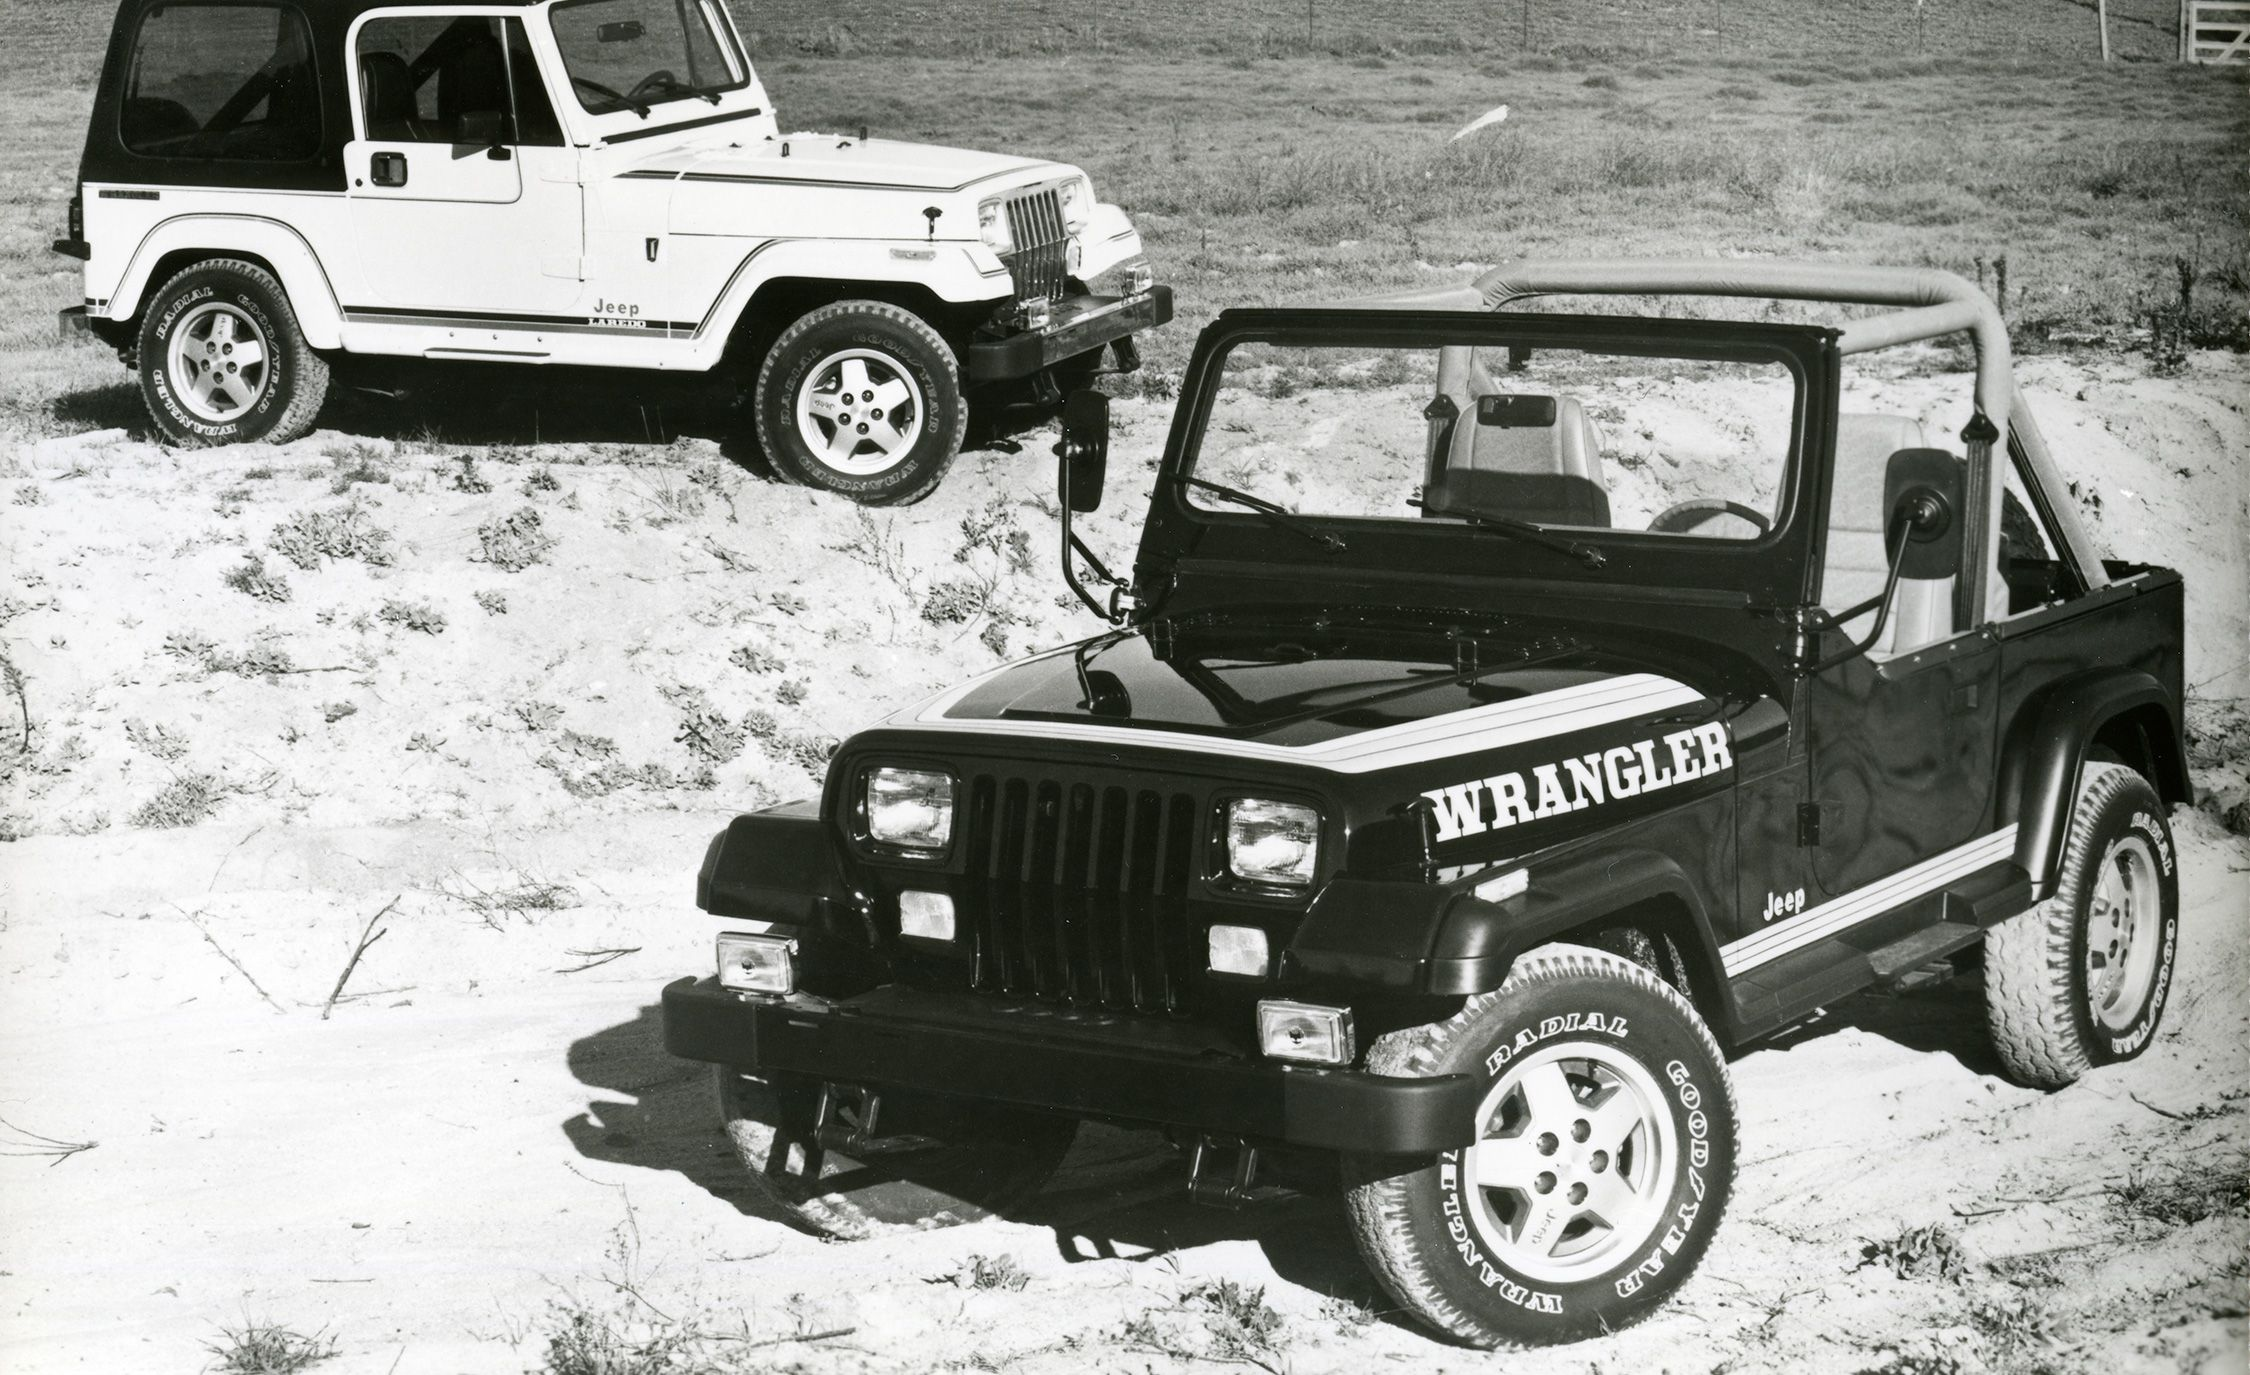 The Complete Visual History Of Jeep Wrangler From 1986 To Present 2004 Tj Front Suspension Diagram Auto Parts Diagrams